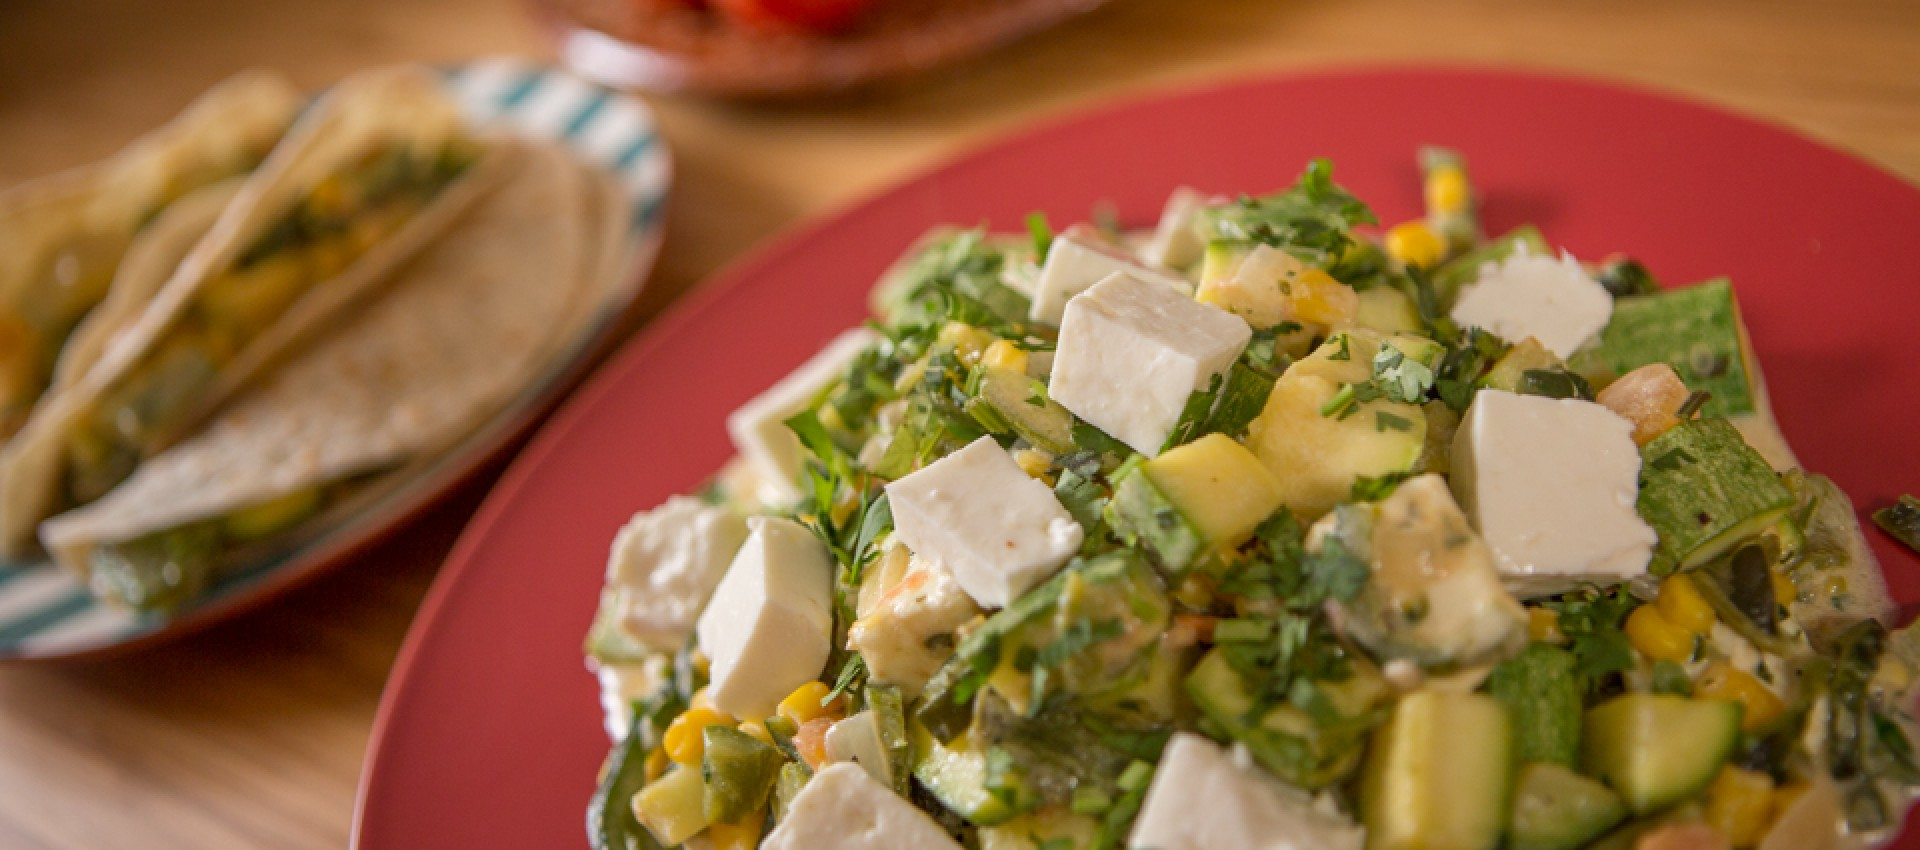 Zucchini with cheese and corn rajas Image